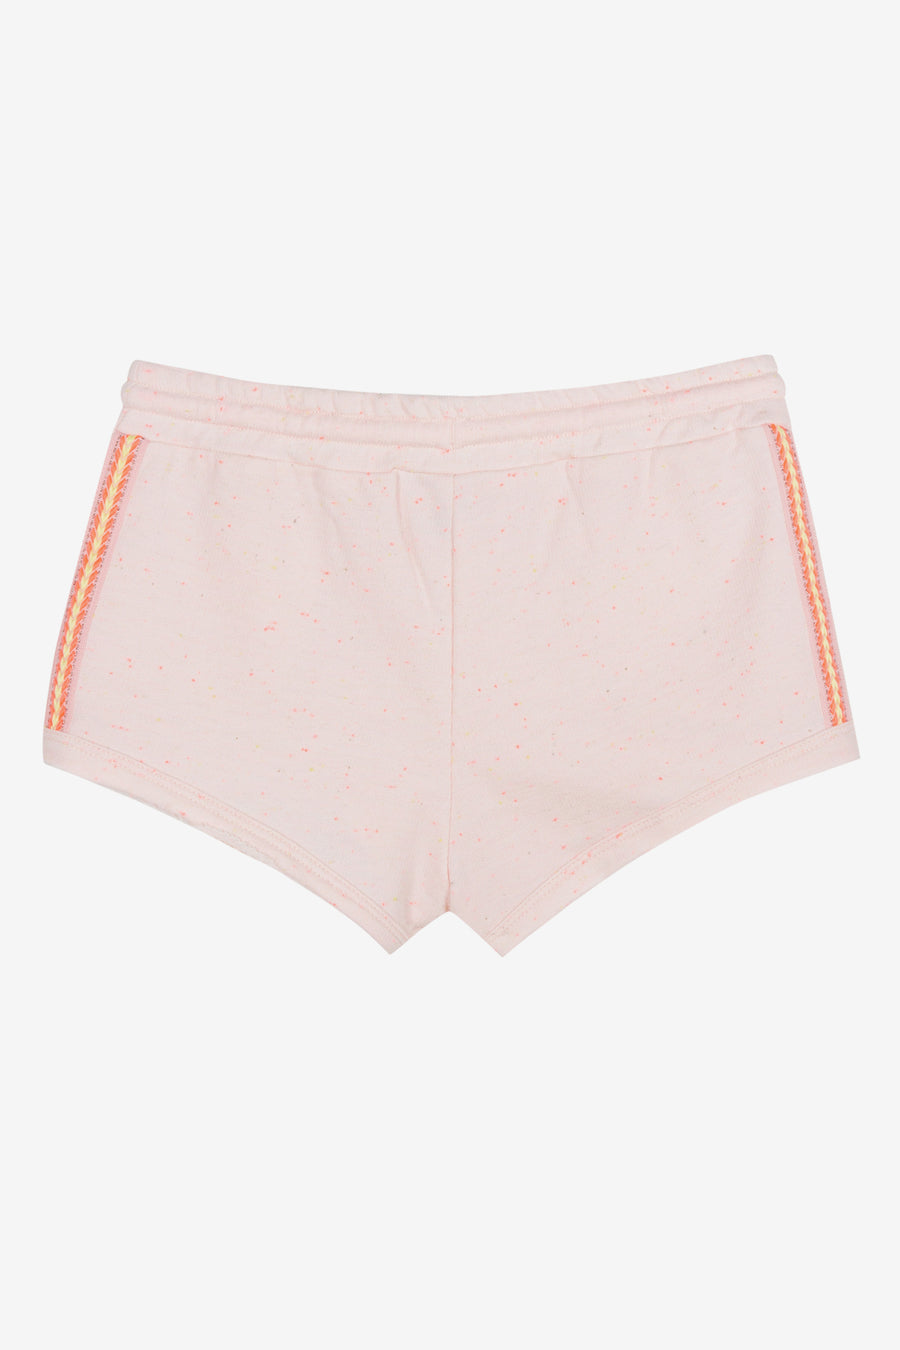 3pommes Palm Springs Shorts